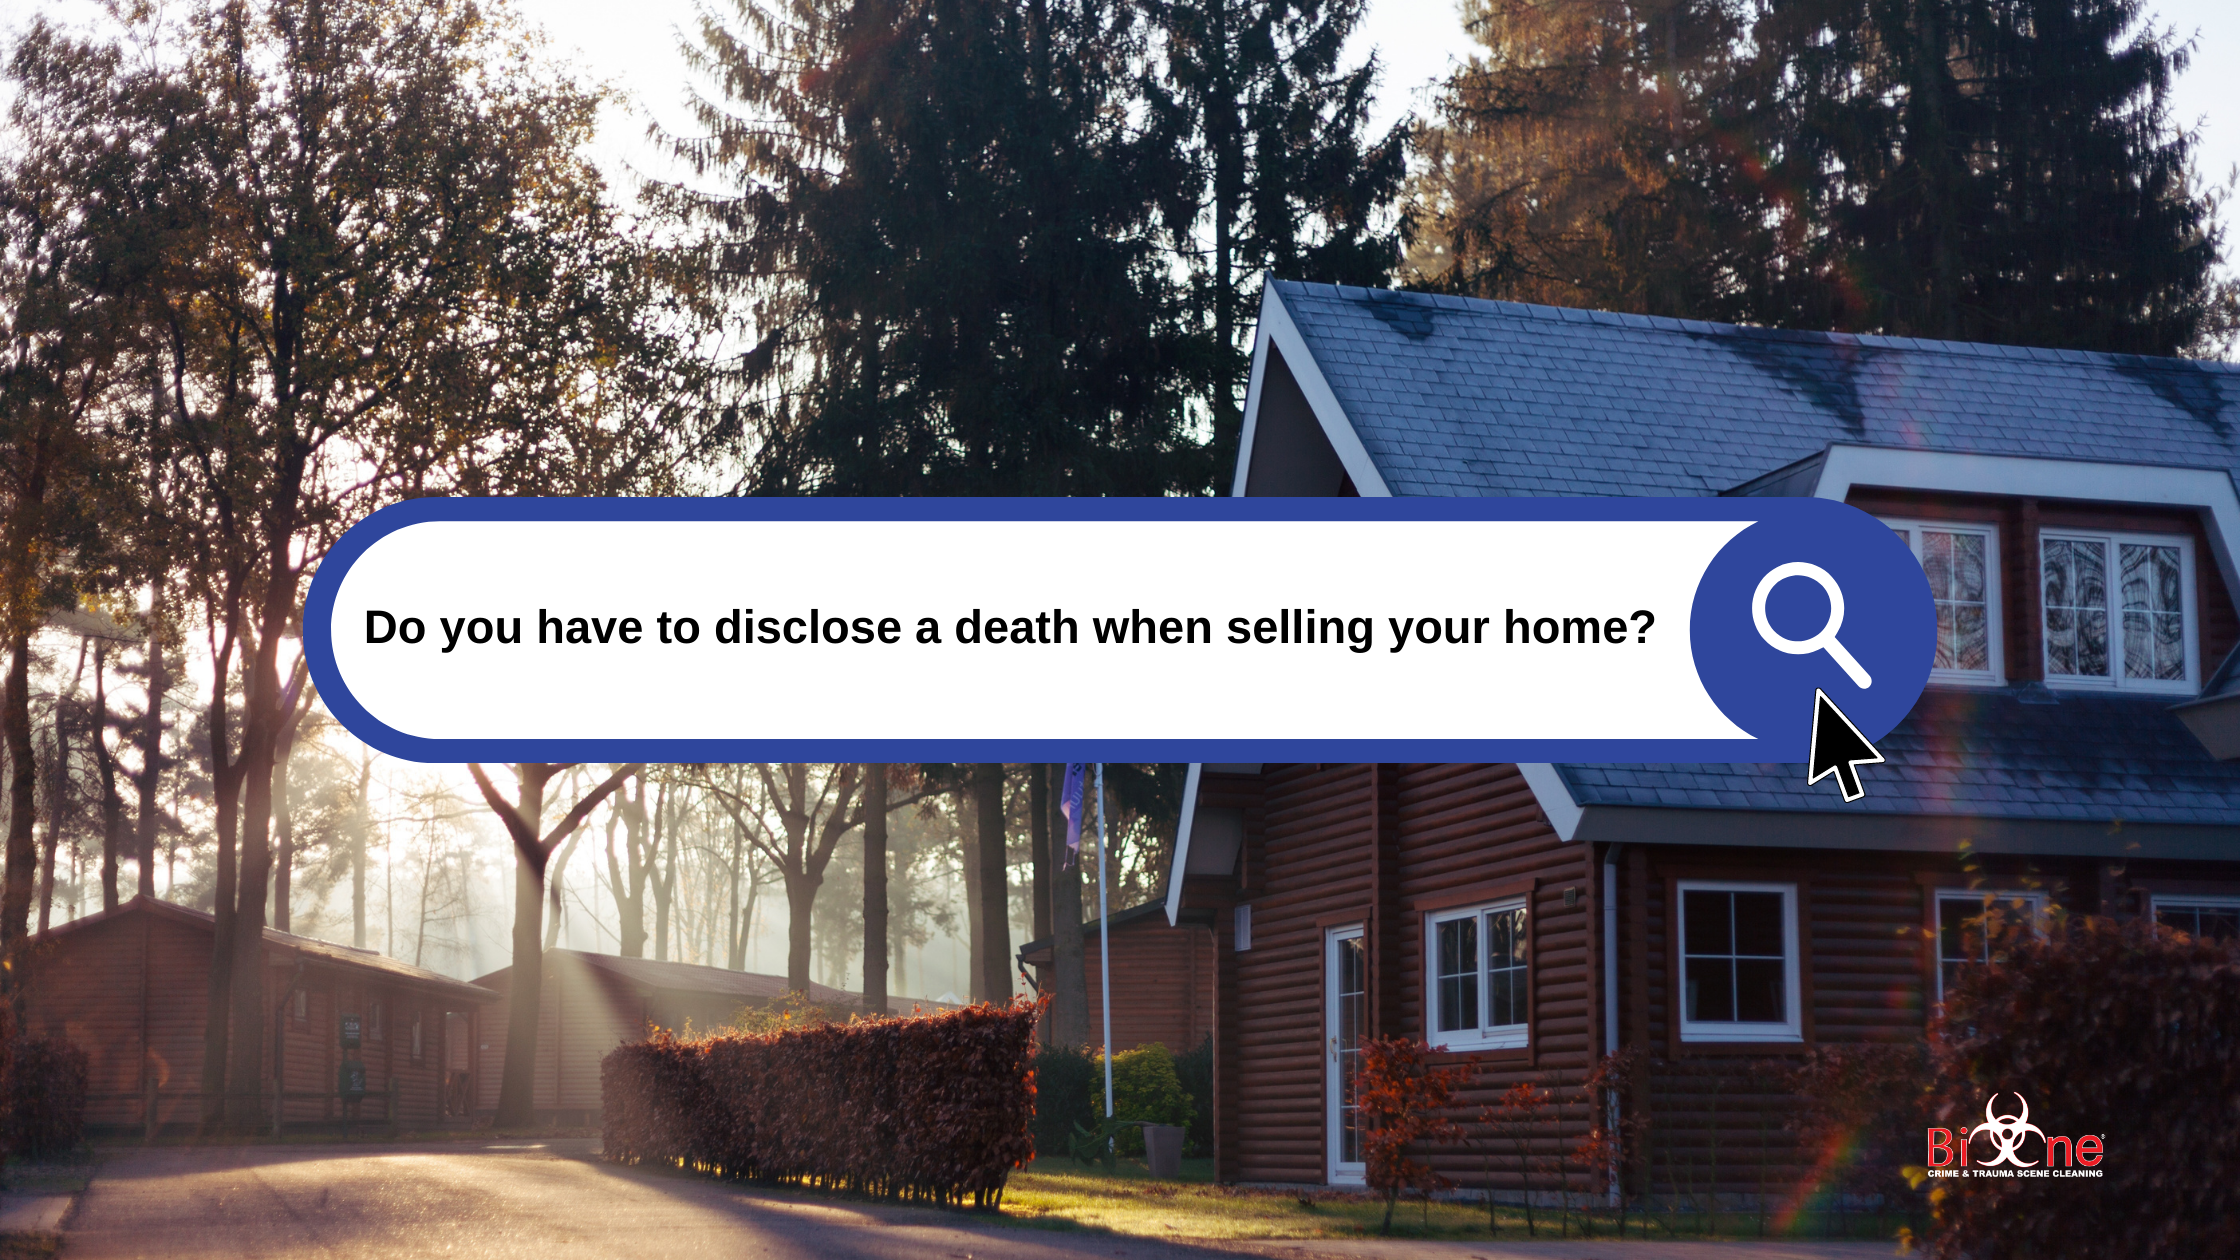 In North Carolina, Do you Have to Disclose a Death When Selling Your Home?